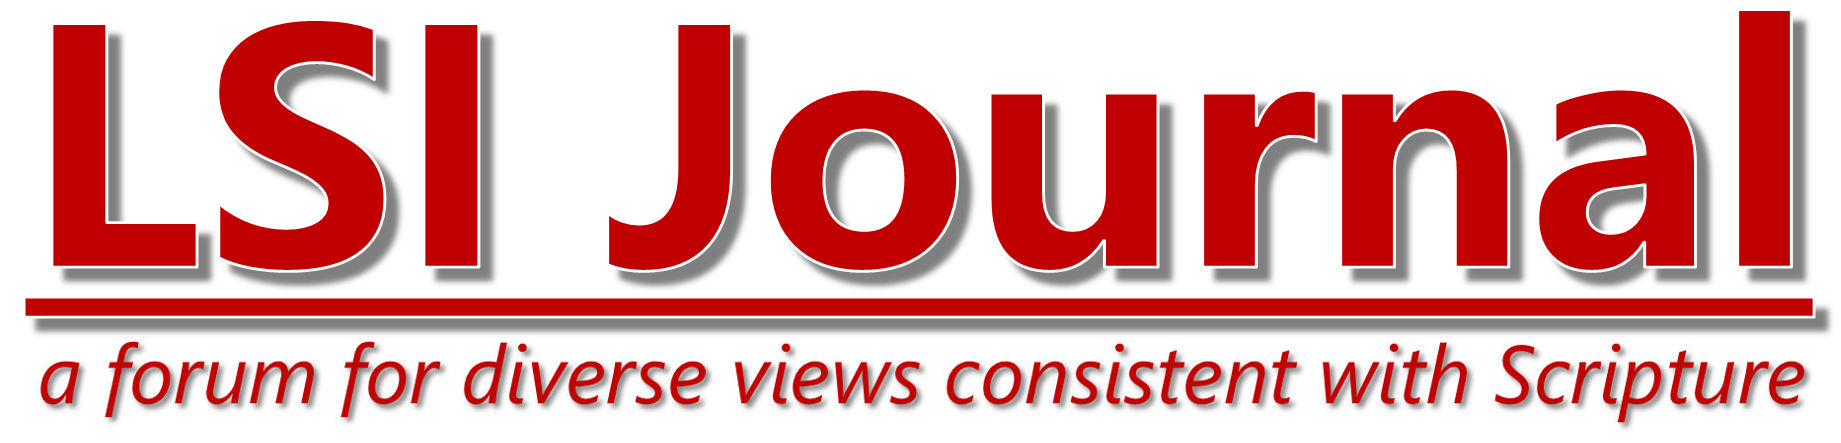 LSI Journal header logo